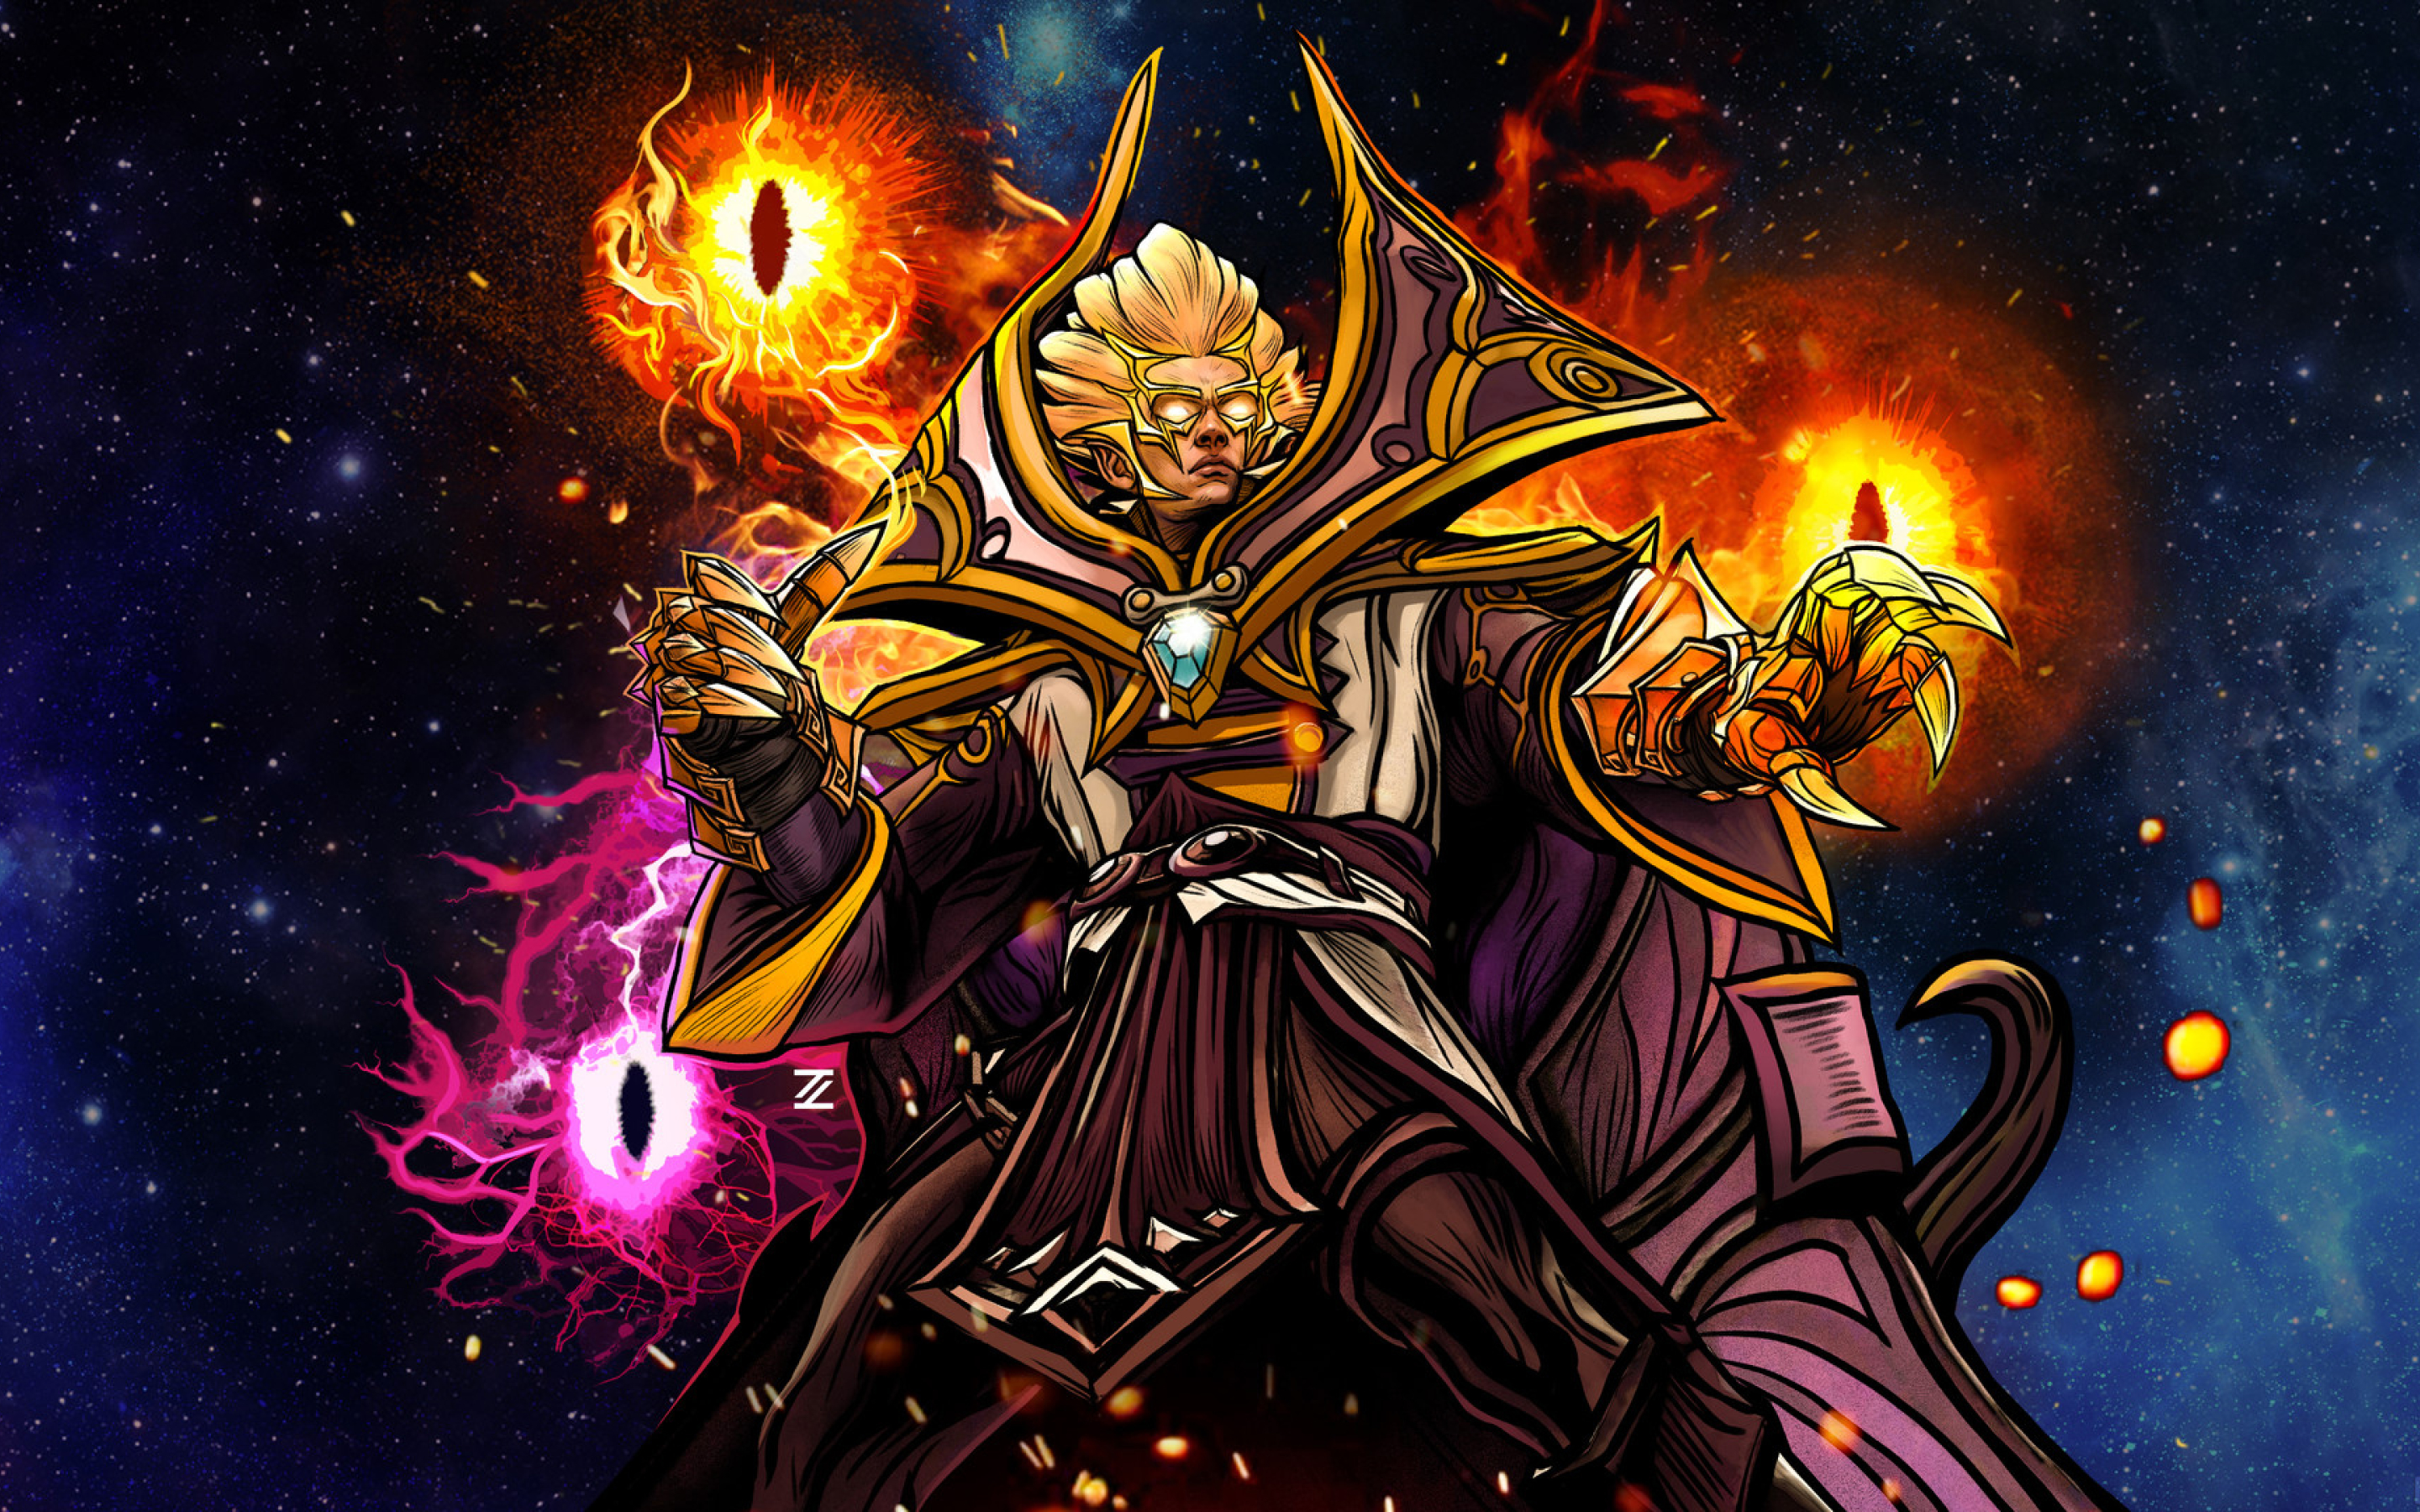 2880x1800 Invoker In DotA 2 Macbook Pro Retina Wallpaper HD